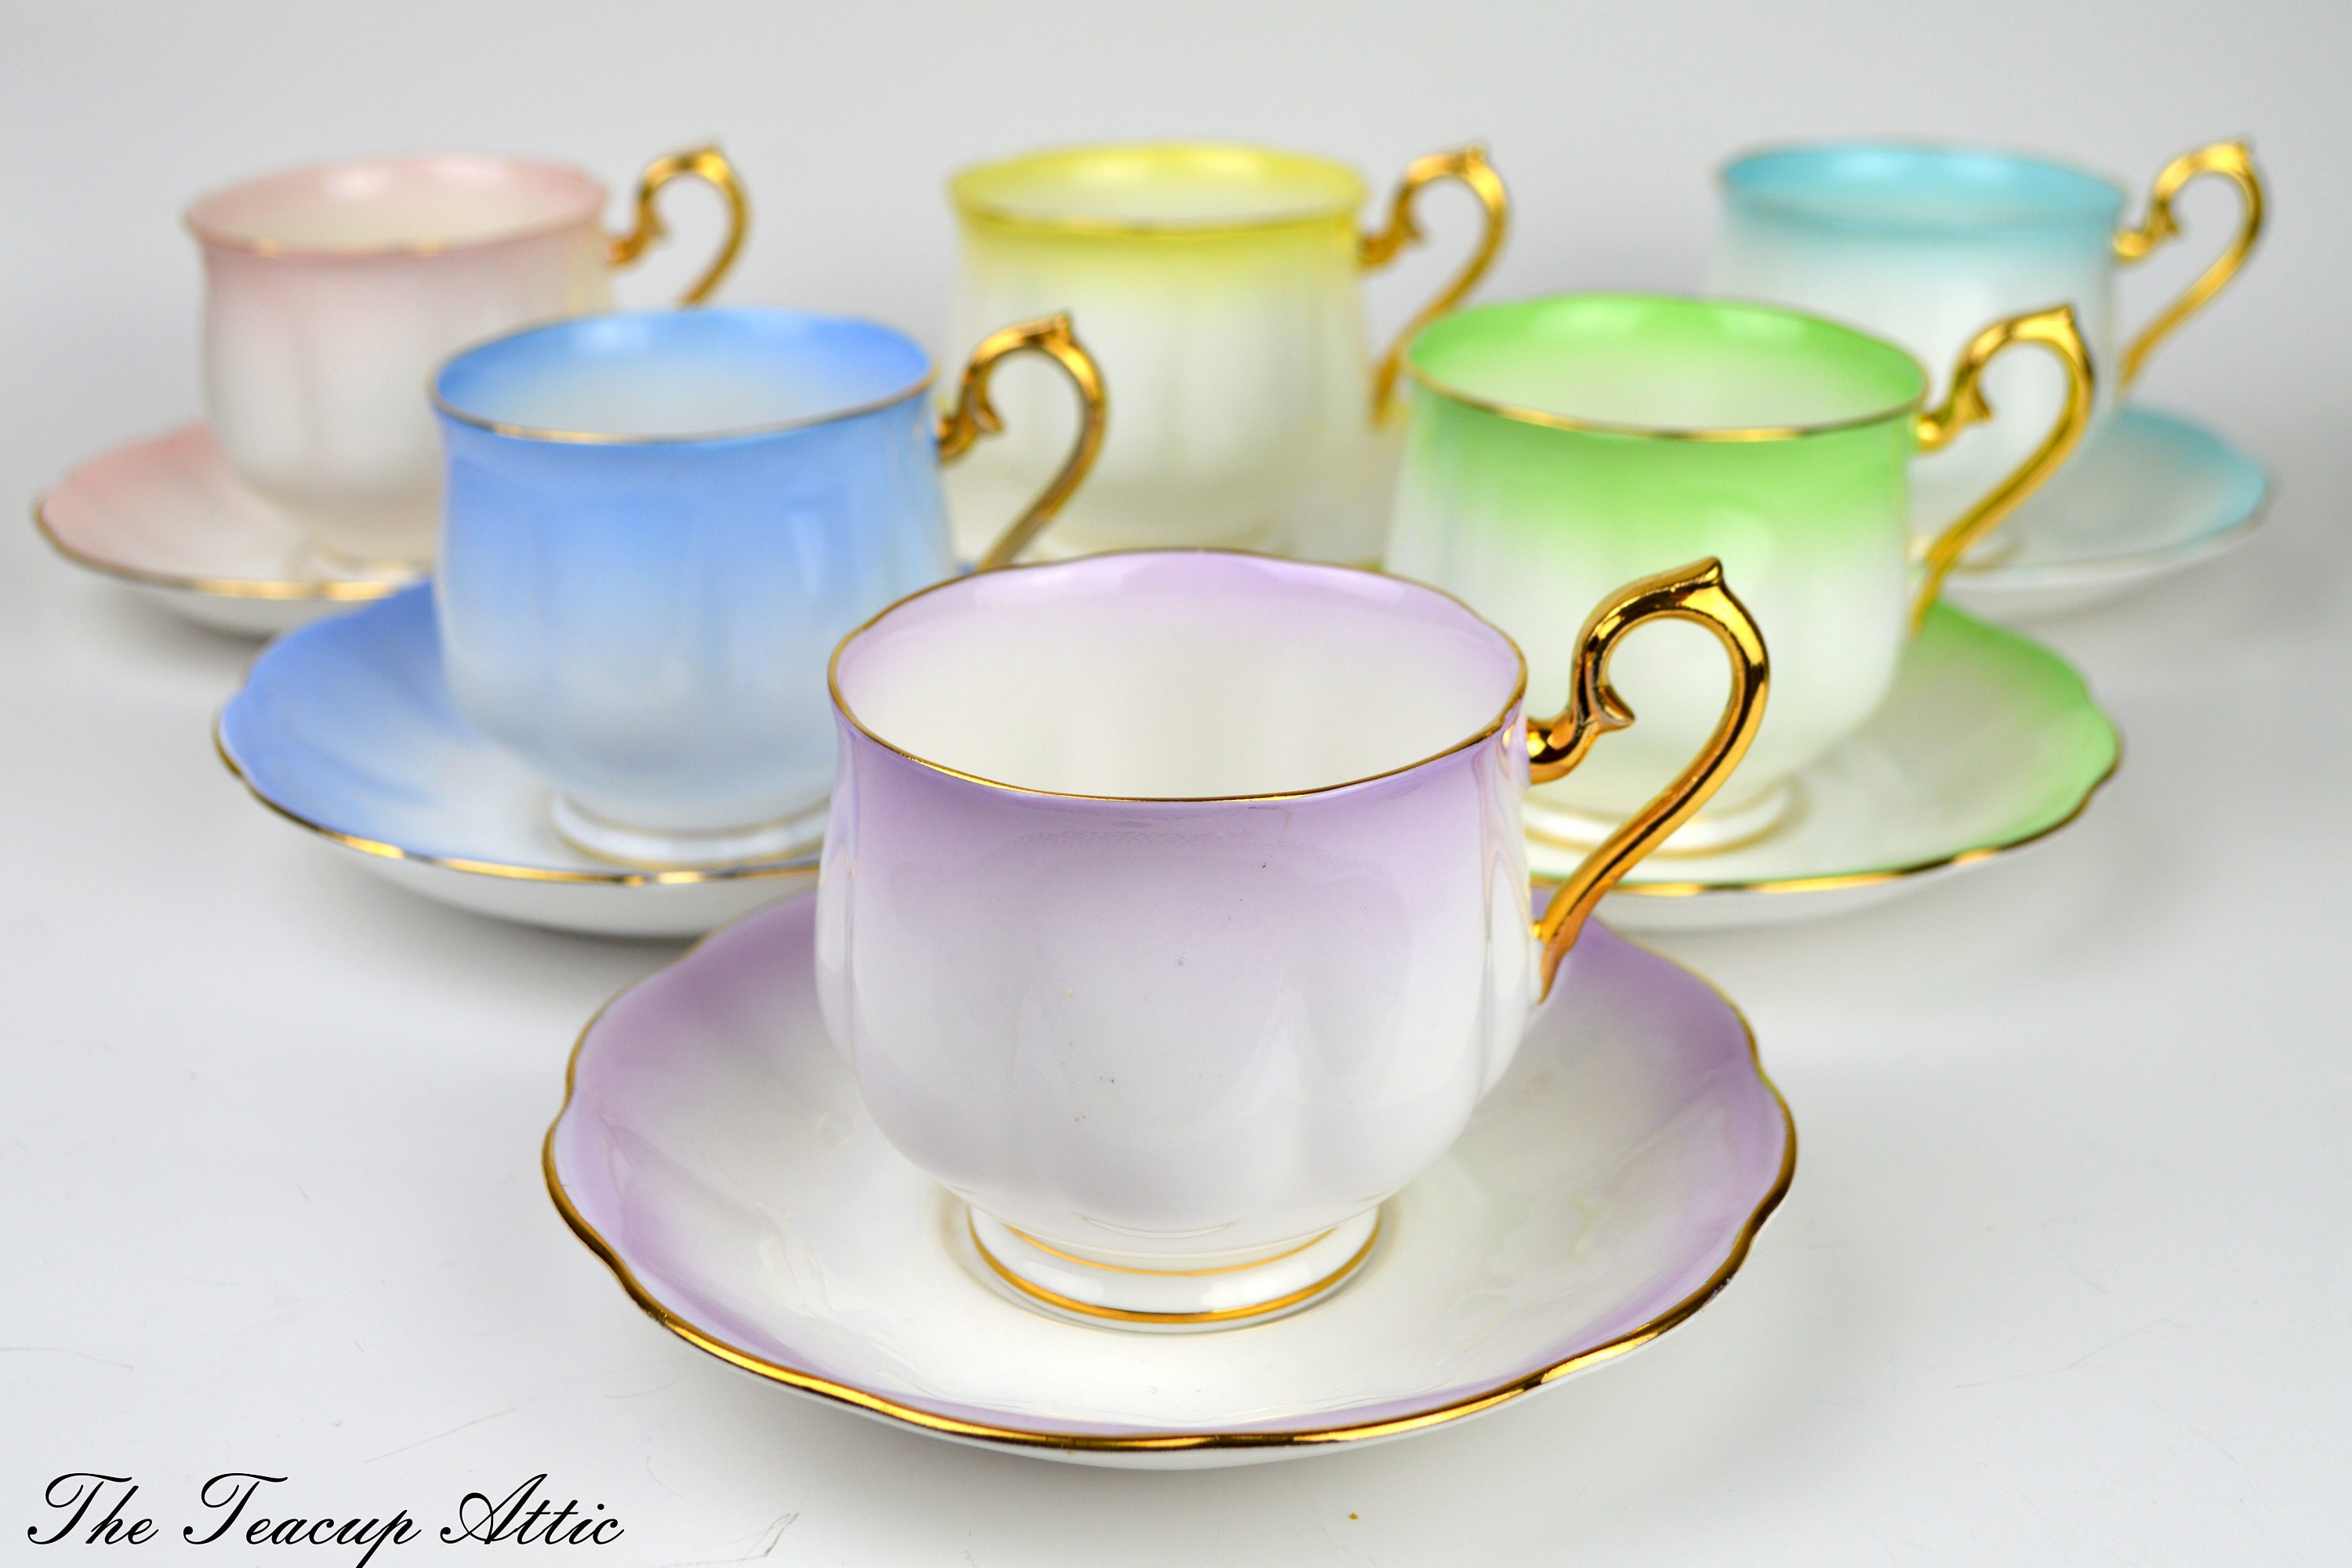 Royal Albert Complete Set of Hampton Shaped Pastel Rainbow Teacups And Saucers, English Bone China Tea Party, ca. 1950